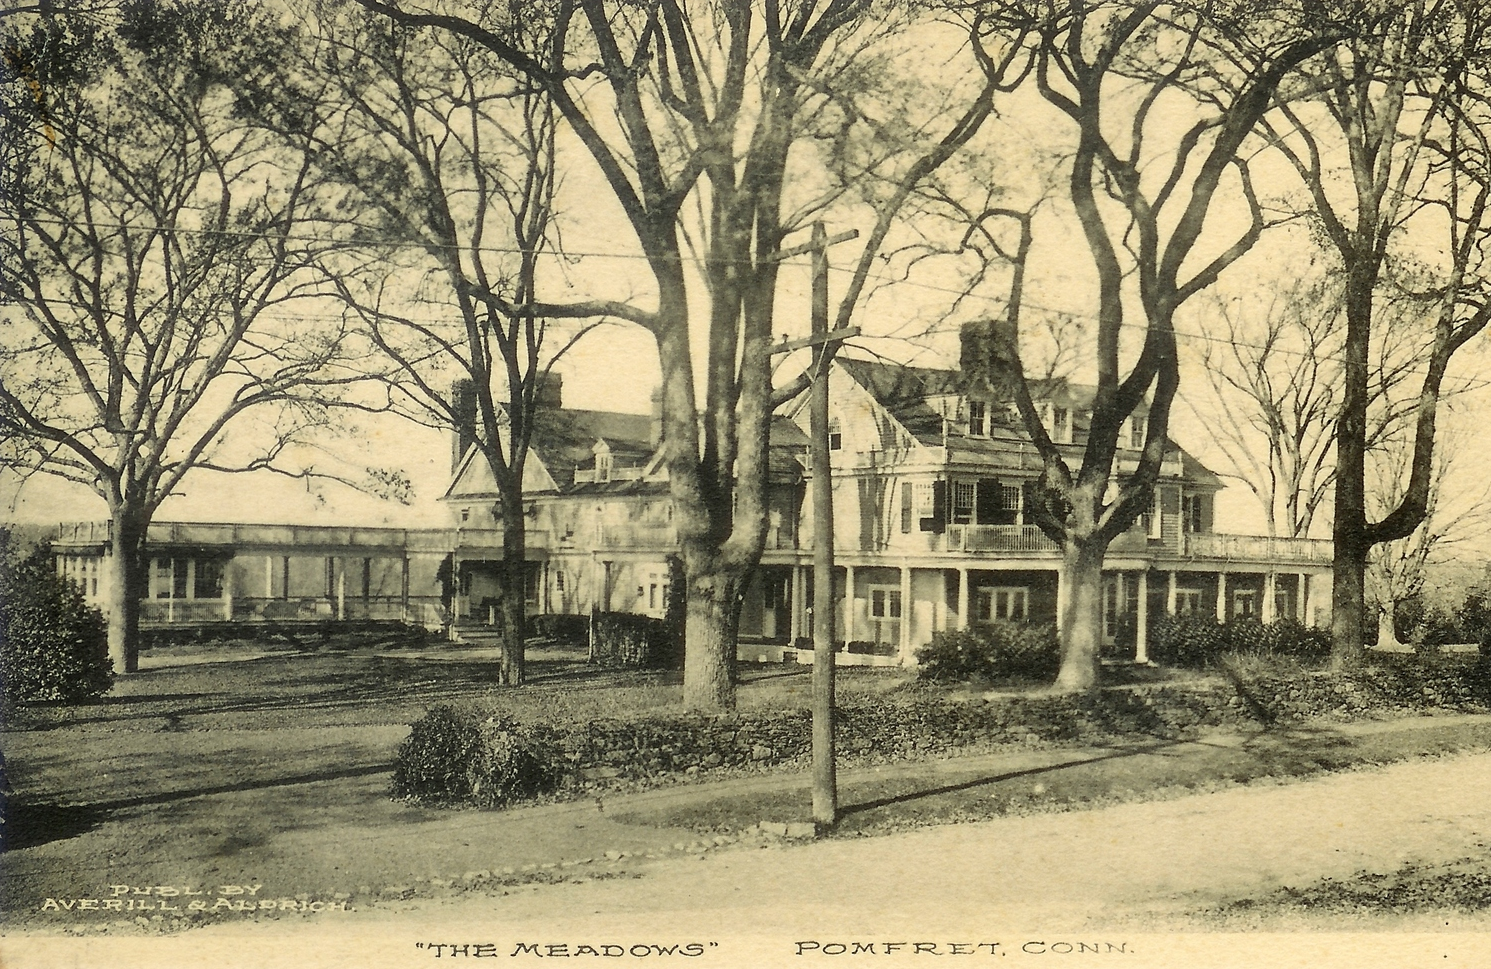 The Col. Thomas Grosvenor House in the 1890's, after Thomas S. Harrison had doubled the size of the house, in a Colonial Revival style.